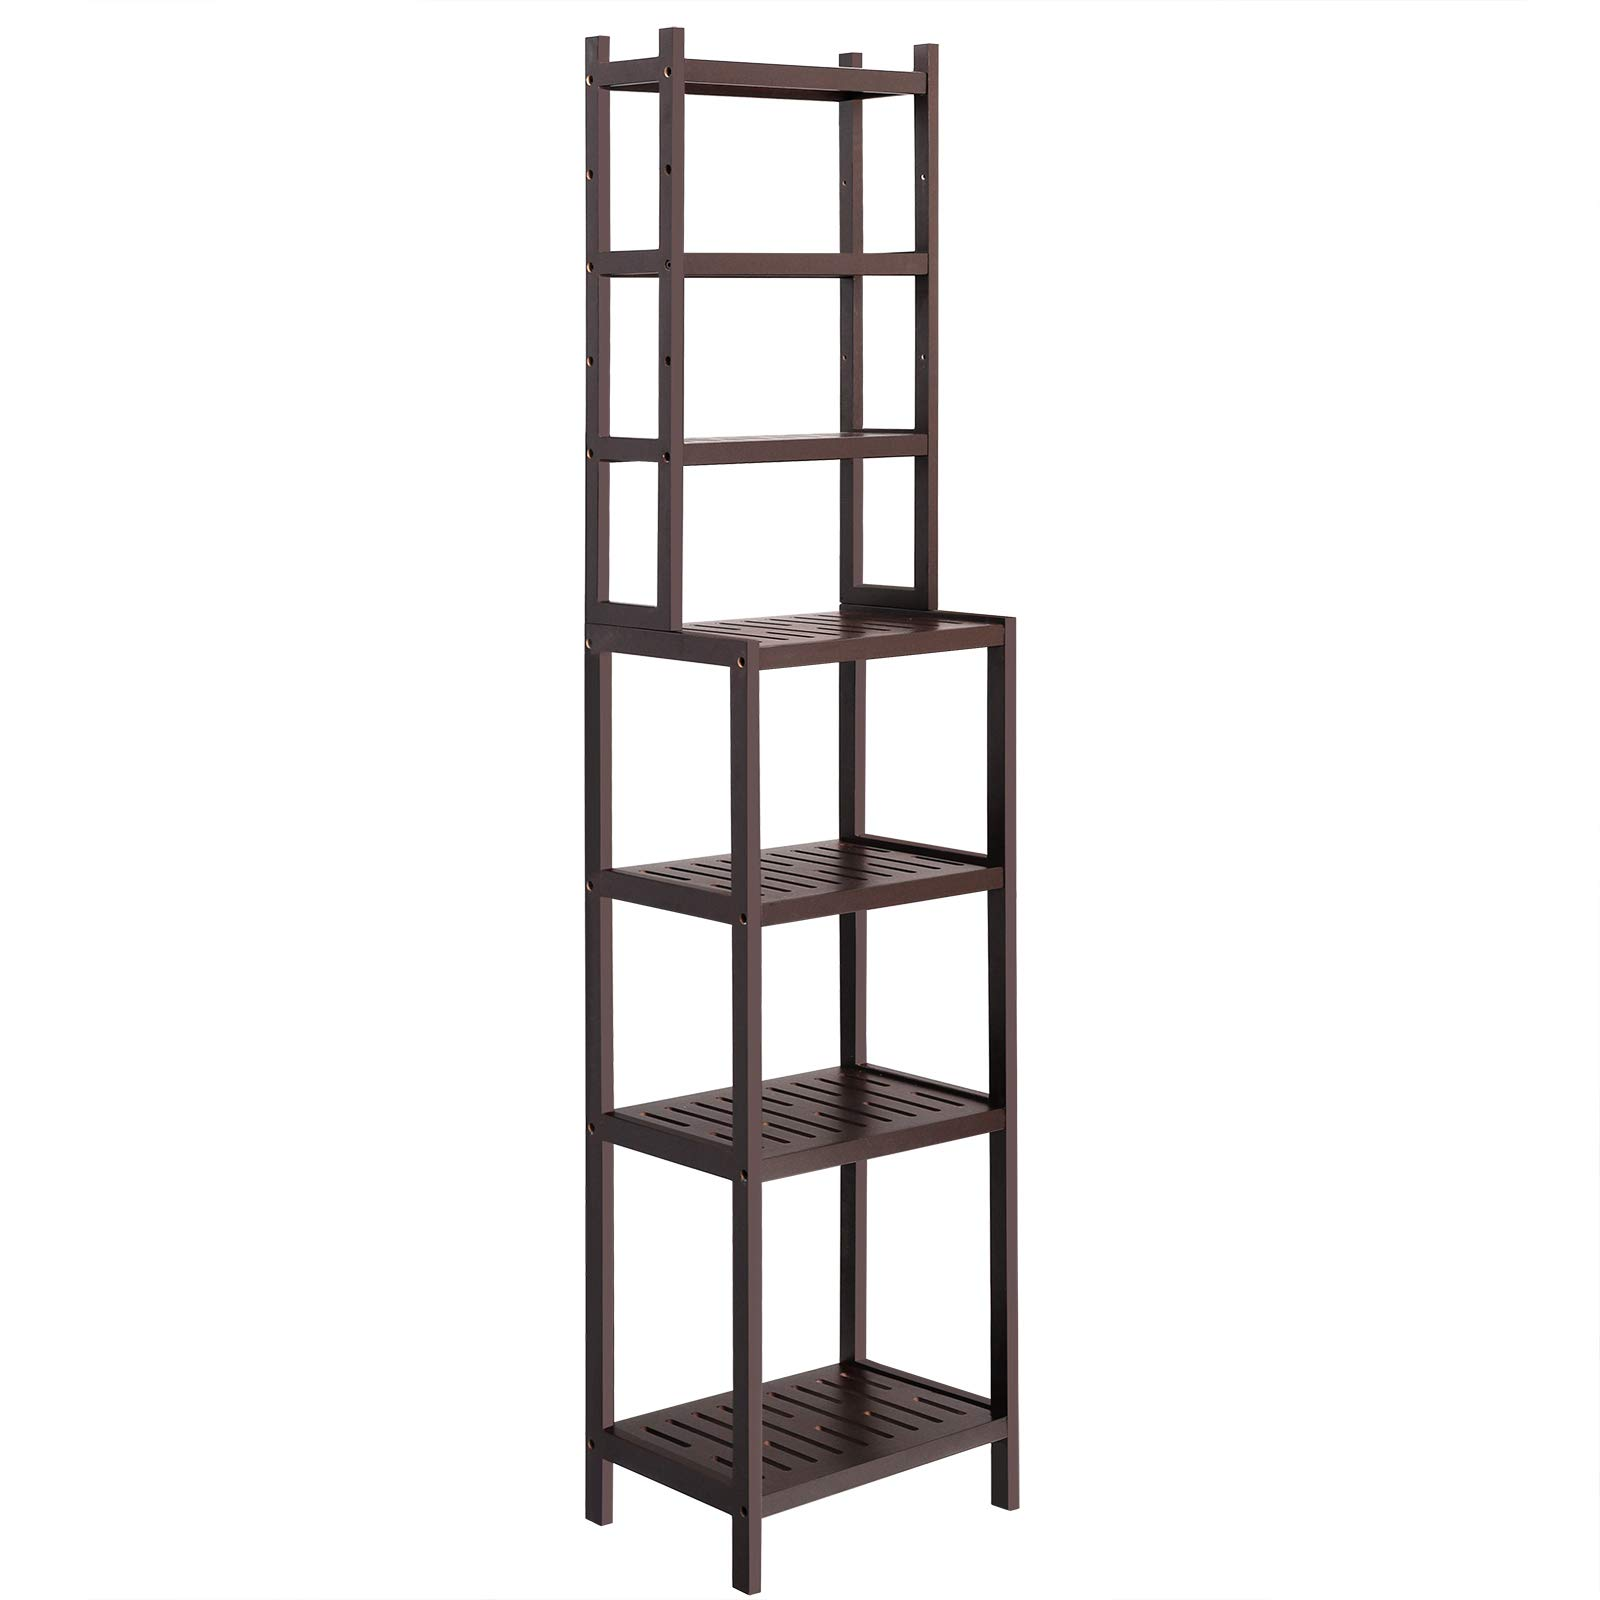 SONGMICS 7-Tier Bamboo Bathroom Shelf, 2-in-1 Design Adjustable Storage Rack, Free Standing Multifunctional Organizer, Shelving Unit for Washroom, Living Room, Kitchen, Brown UBCR01BR by SONGMICS